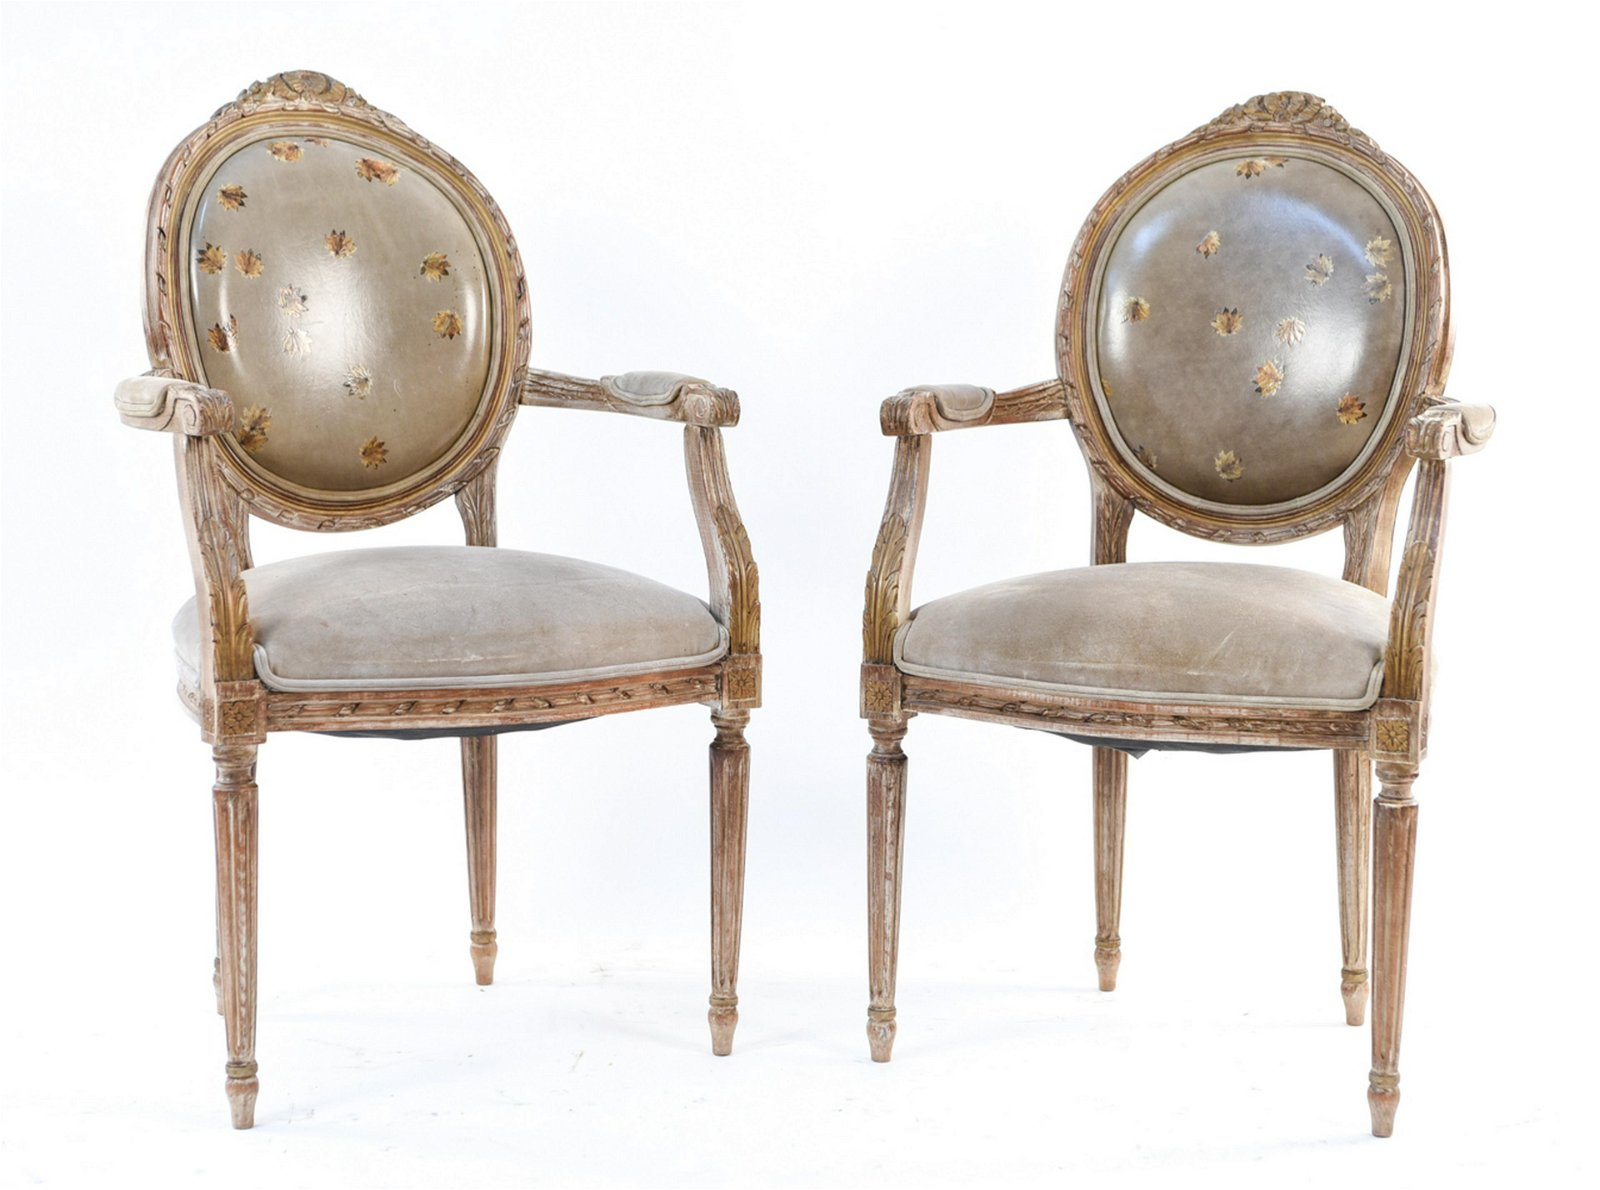 PAIR OF LOUIS XVI STYLE FAUTEUIL ARMCHAIRS